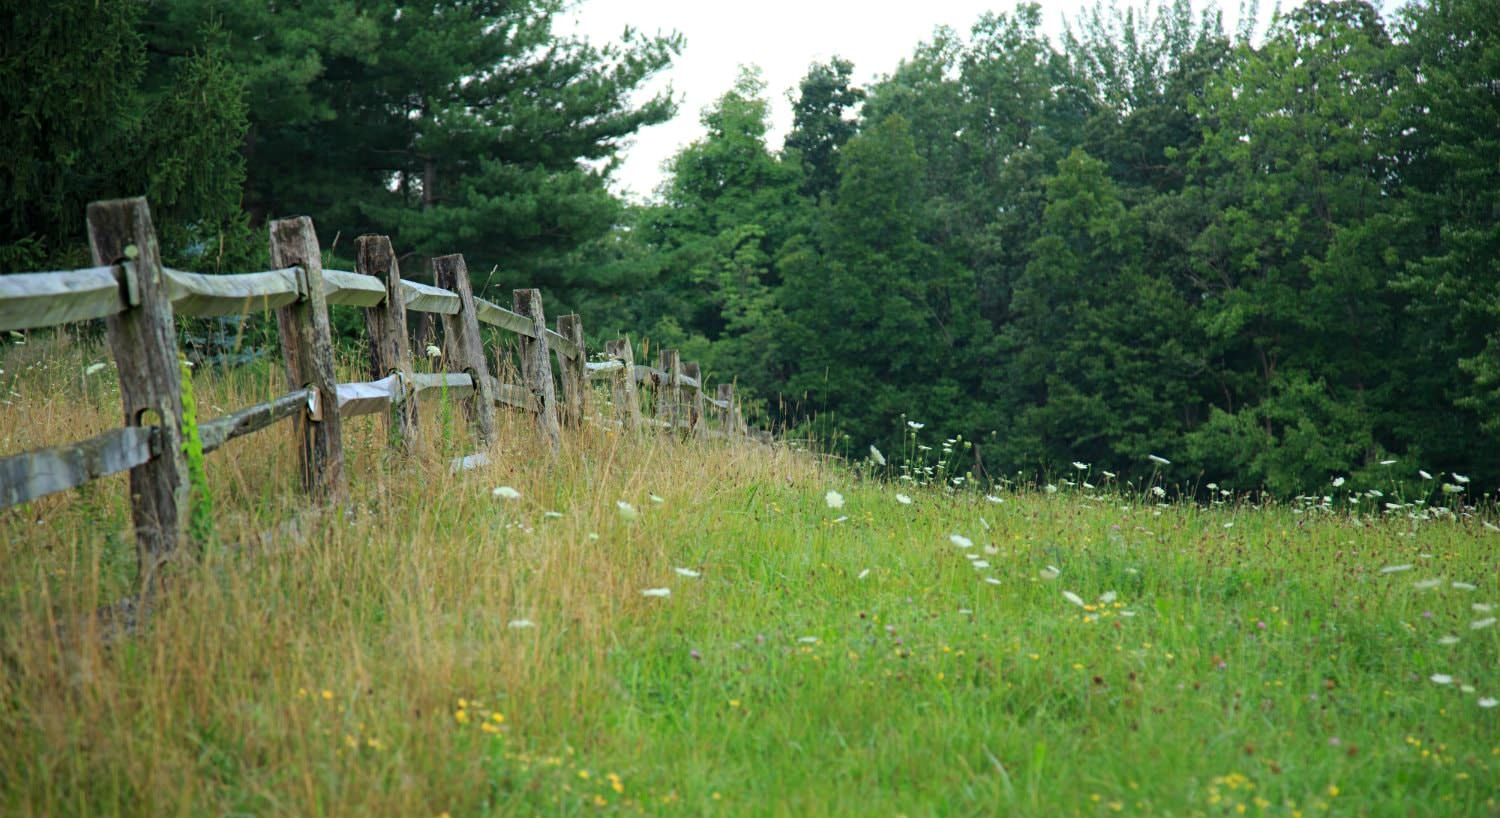 Grassy meadow with wildflowers and a split-rail fence surrounded by lush green trees